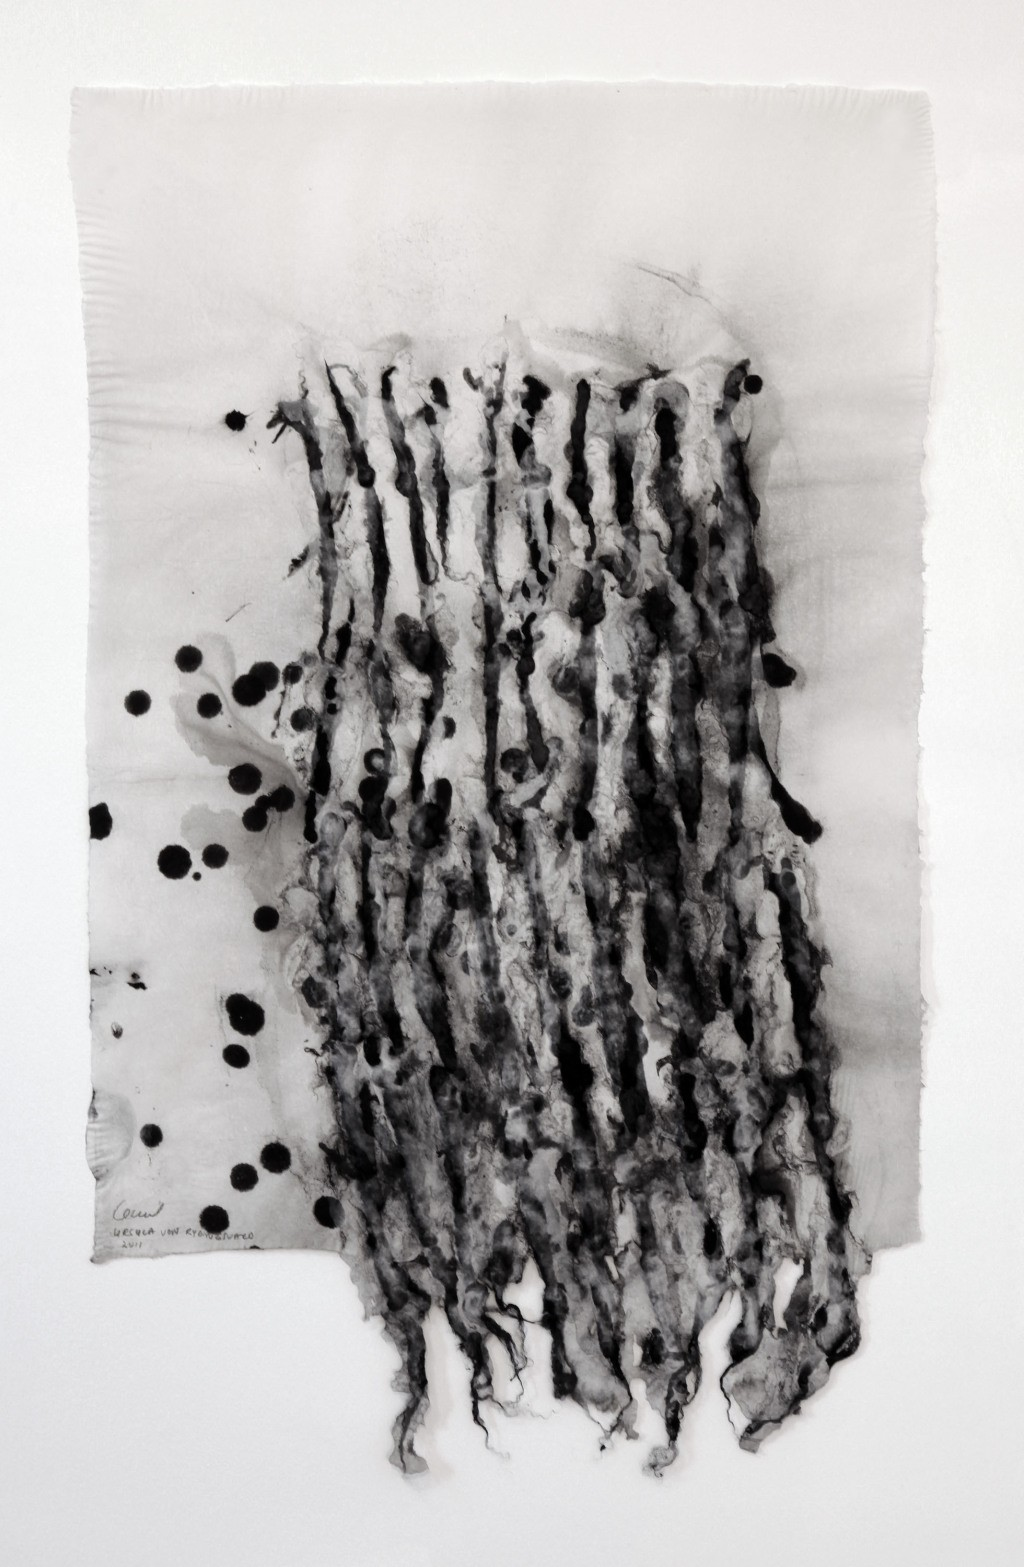 main work - Ursula Von Rydingsvard, Constellation